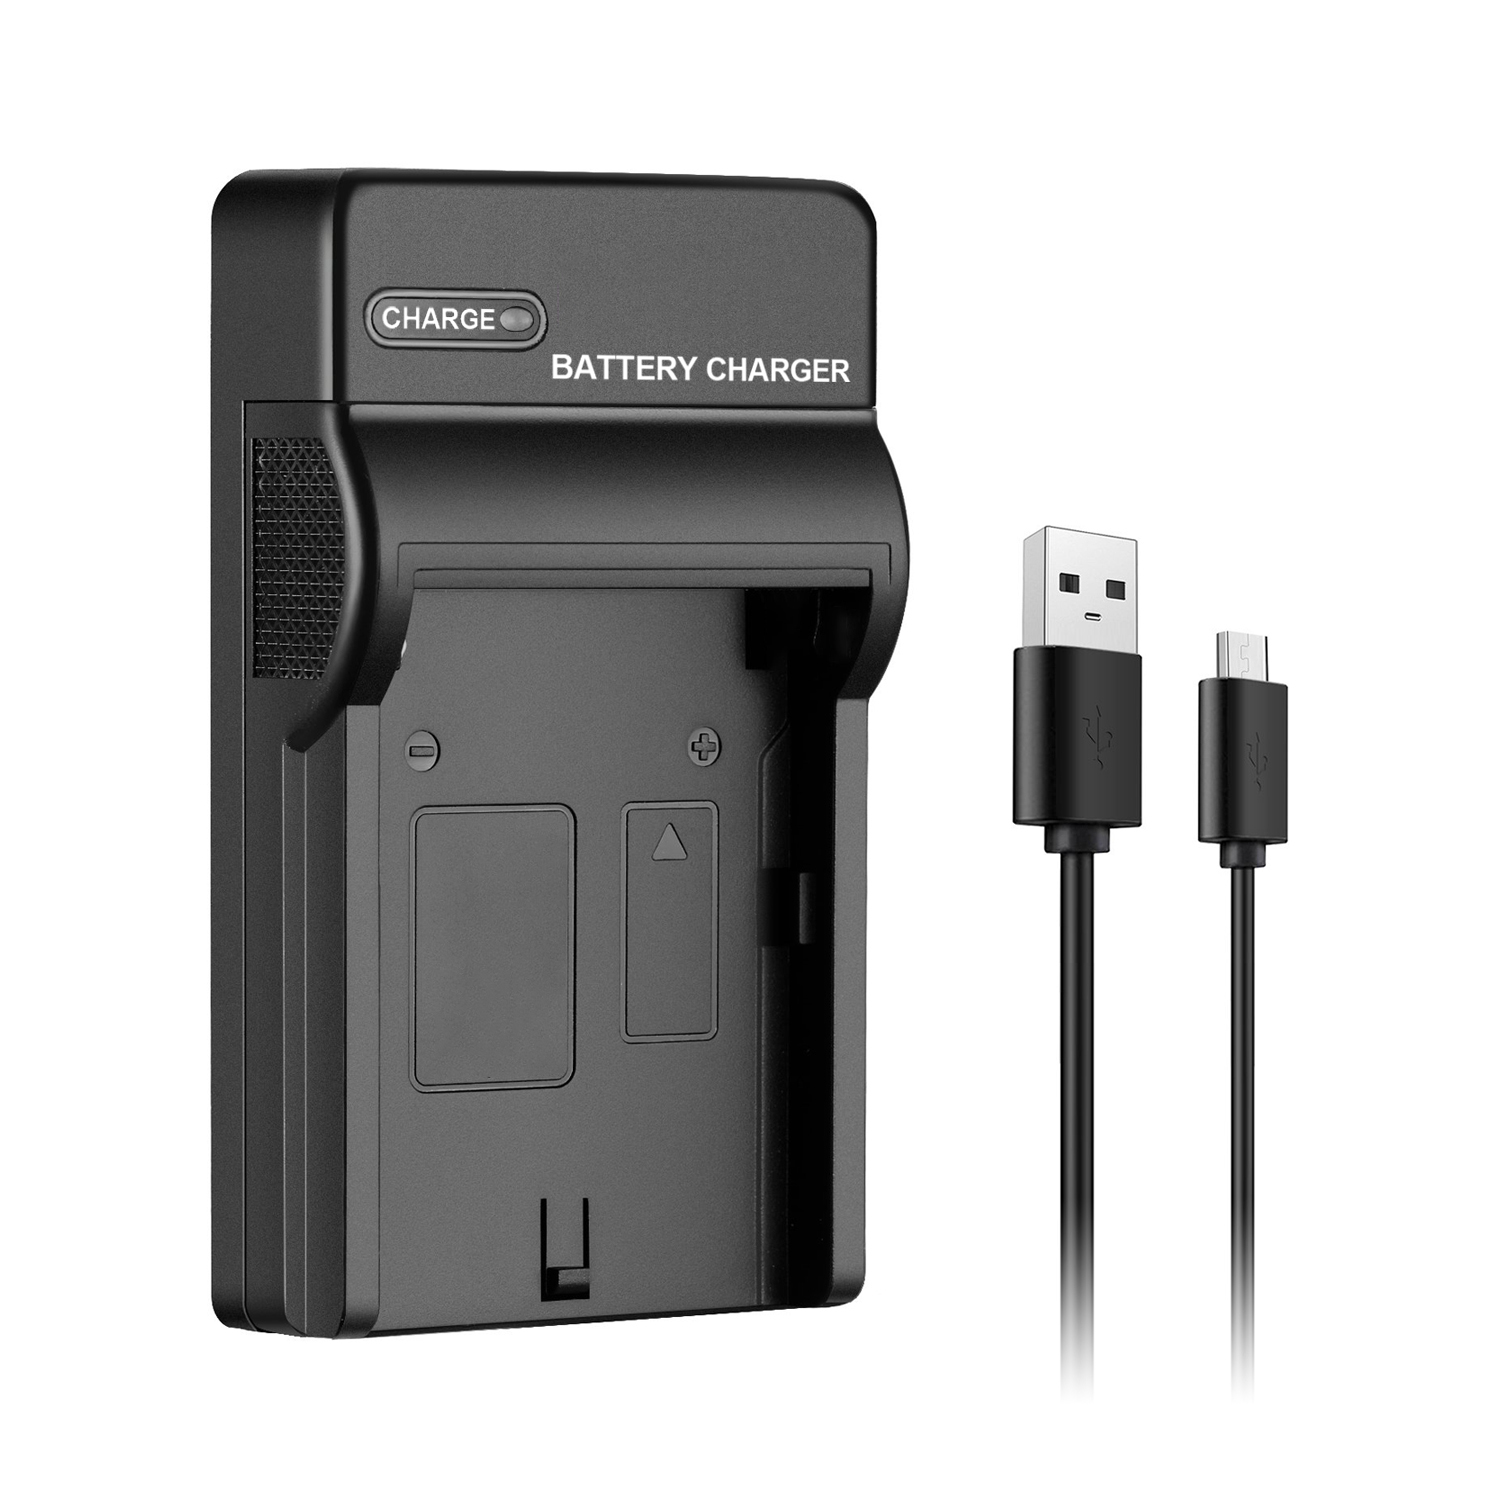 SANGER NP BX1 USB Charger for Sony DSC RX1 RX100 AS100V M3 M2 HX300 HX400 HX50 HX60 GWP88 AS15 WX350 Camera battery NP BX1 in Chargers from Consumer Electronics